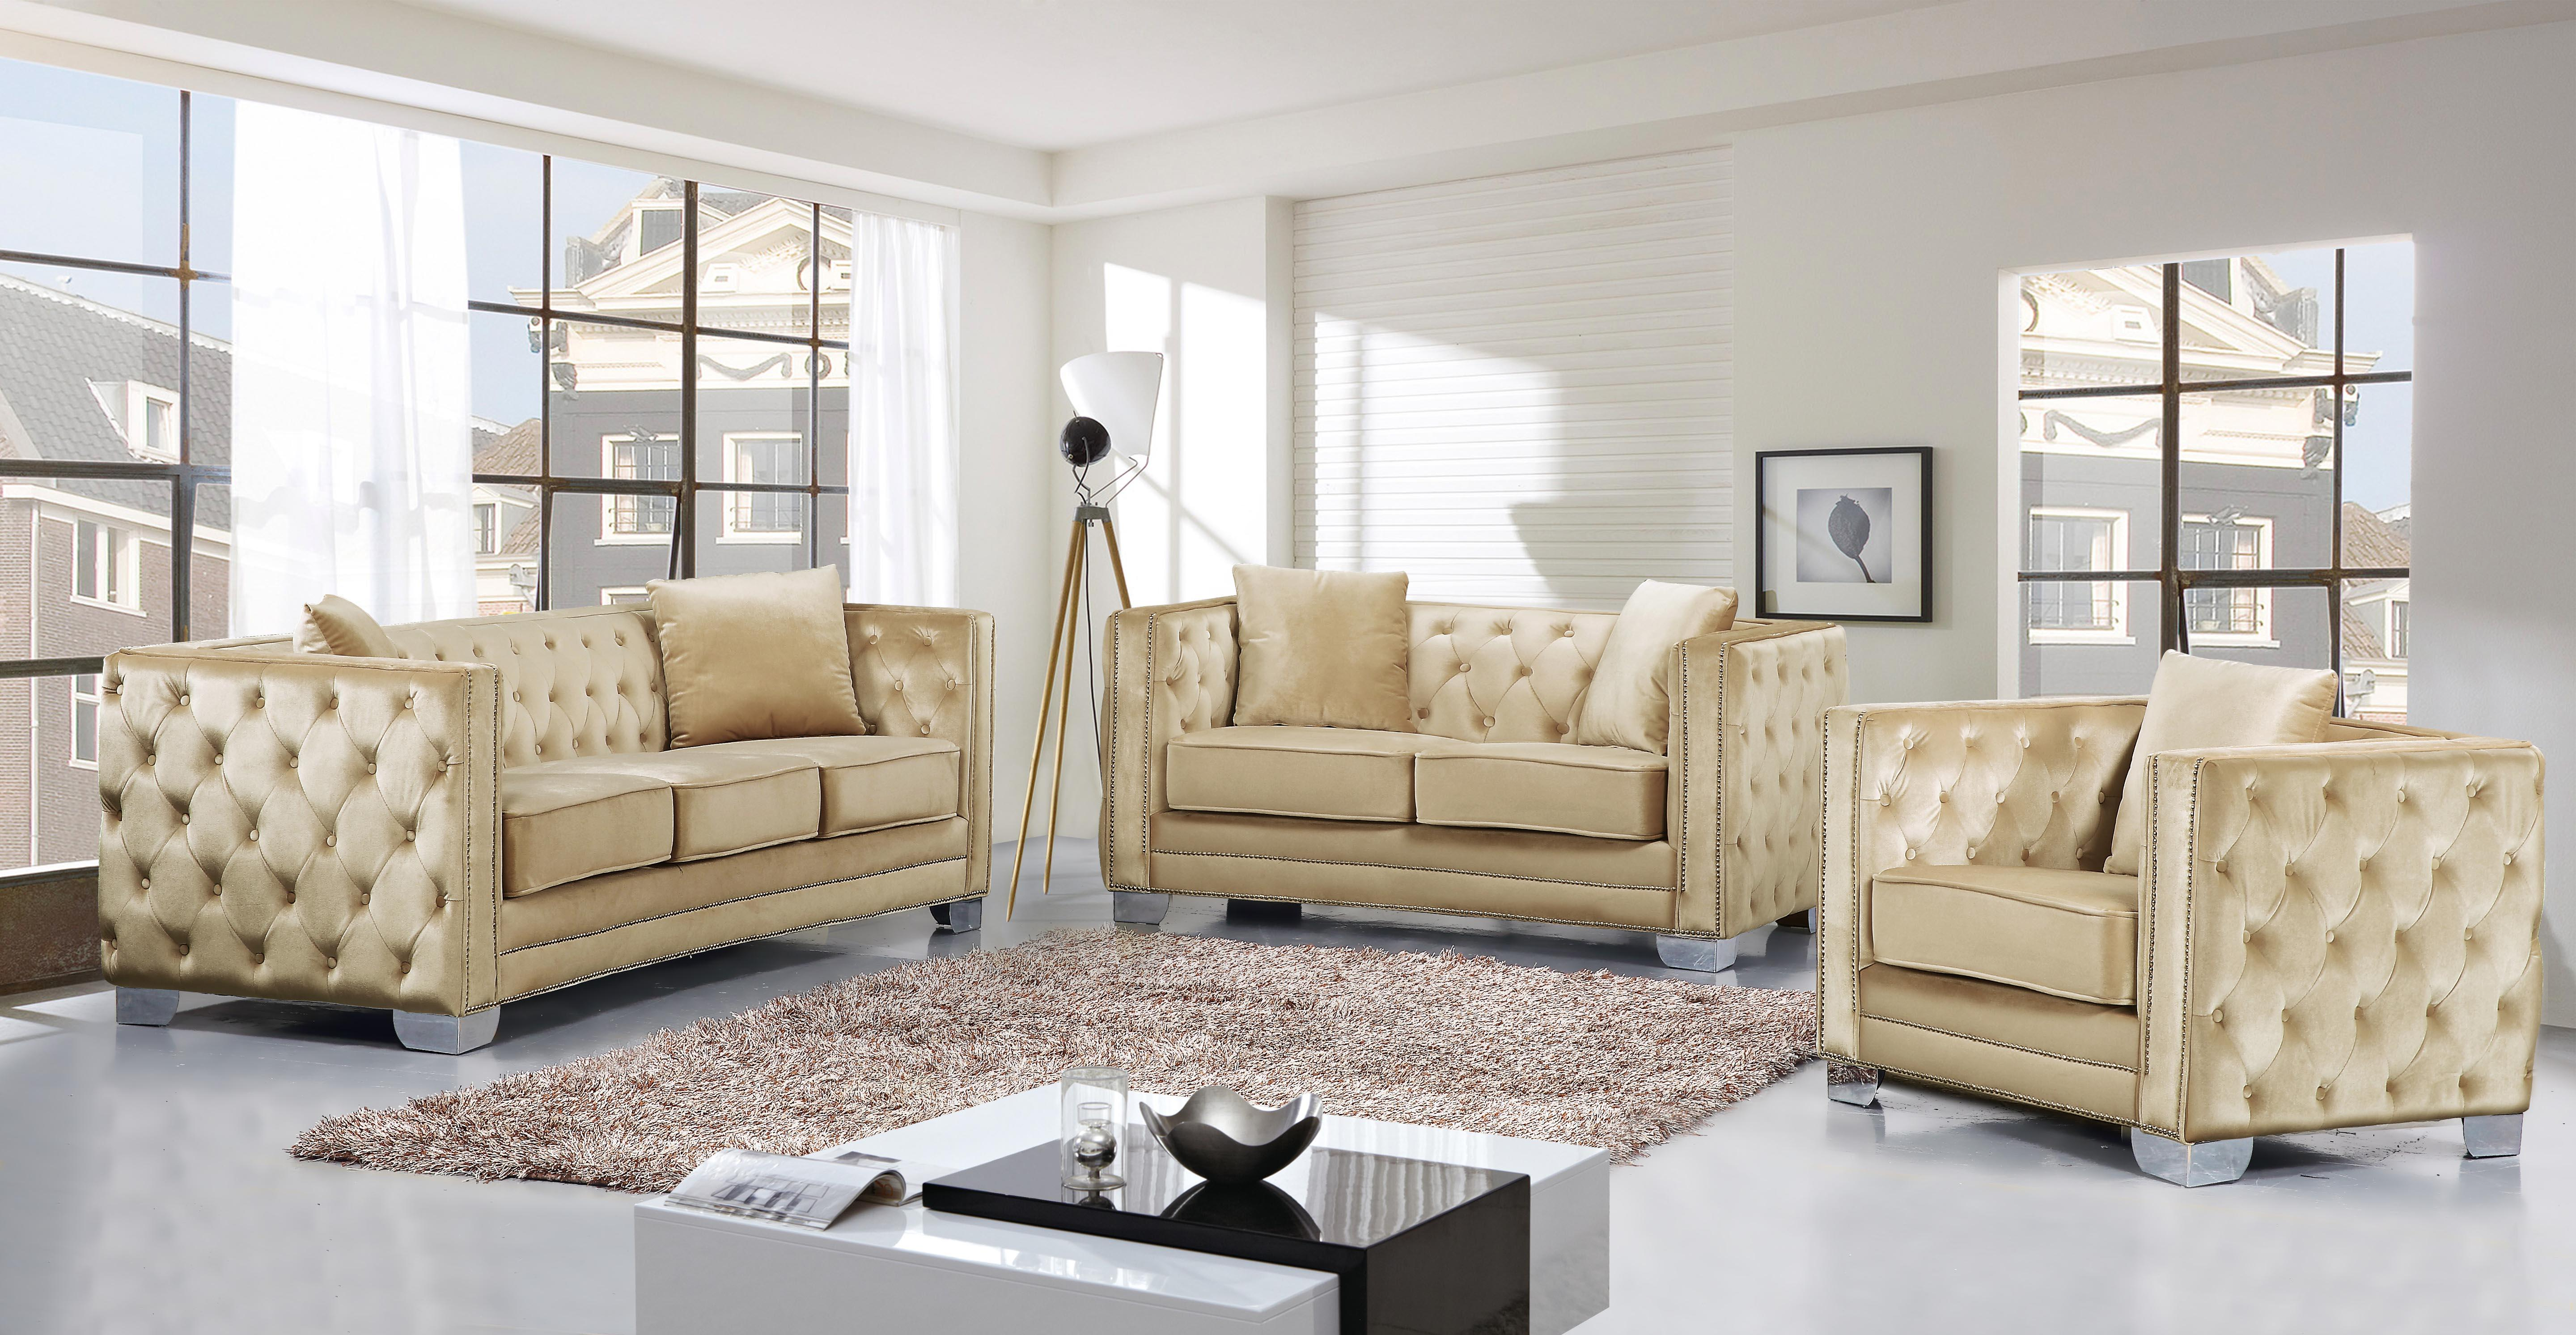 Picture of: Beige Velvet Tufted Sofa Loveseat Chair Set 3 Pcs Meridian Furniture 648 Reese 648be Set 3